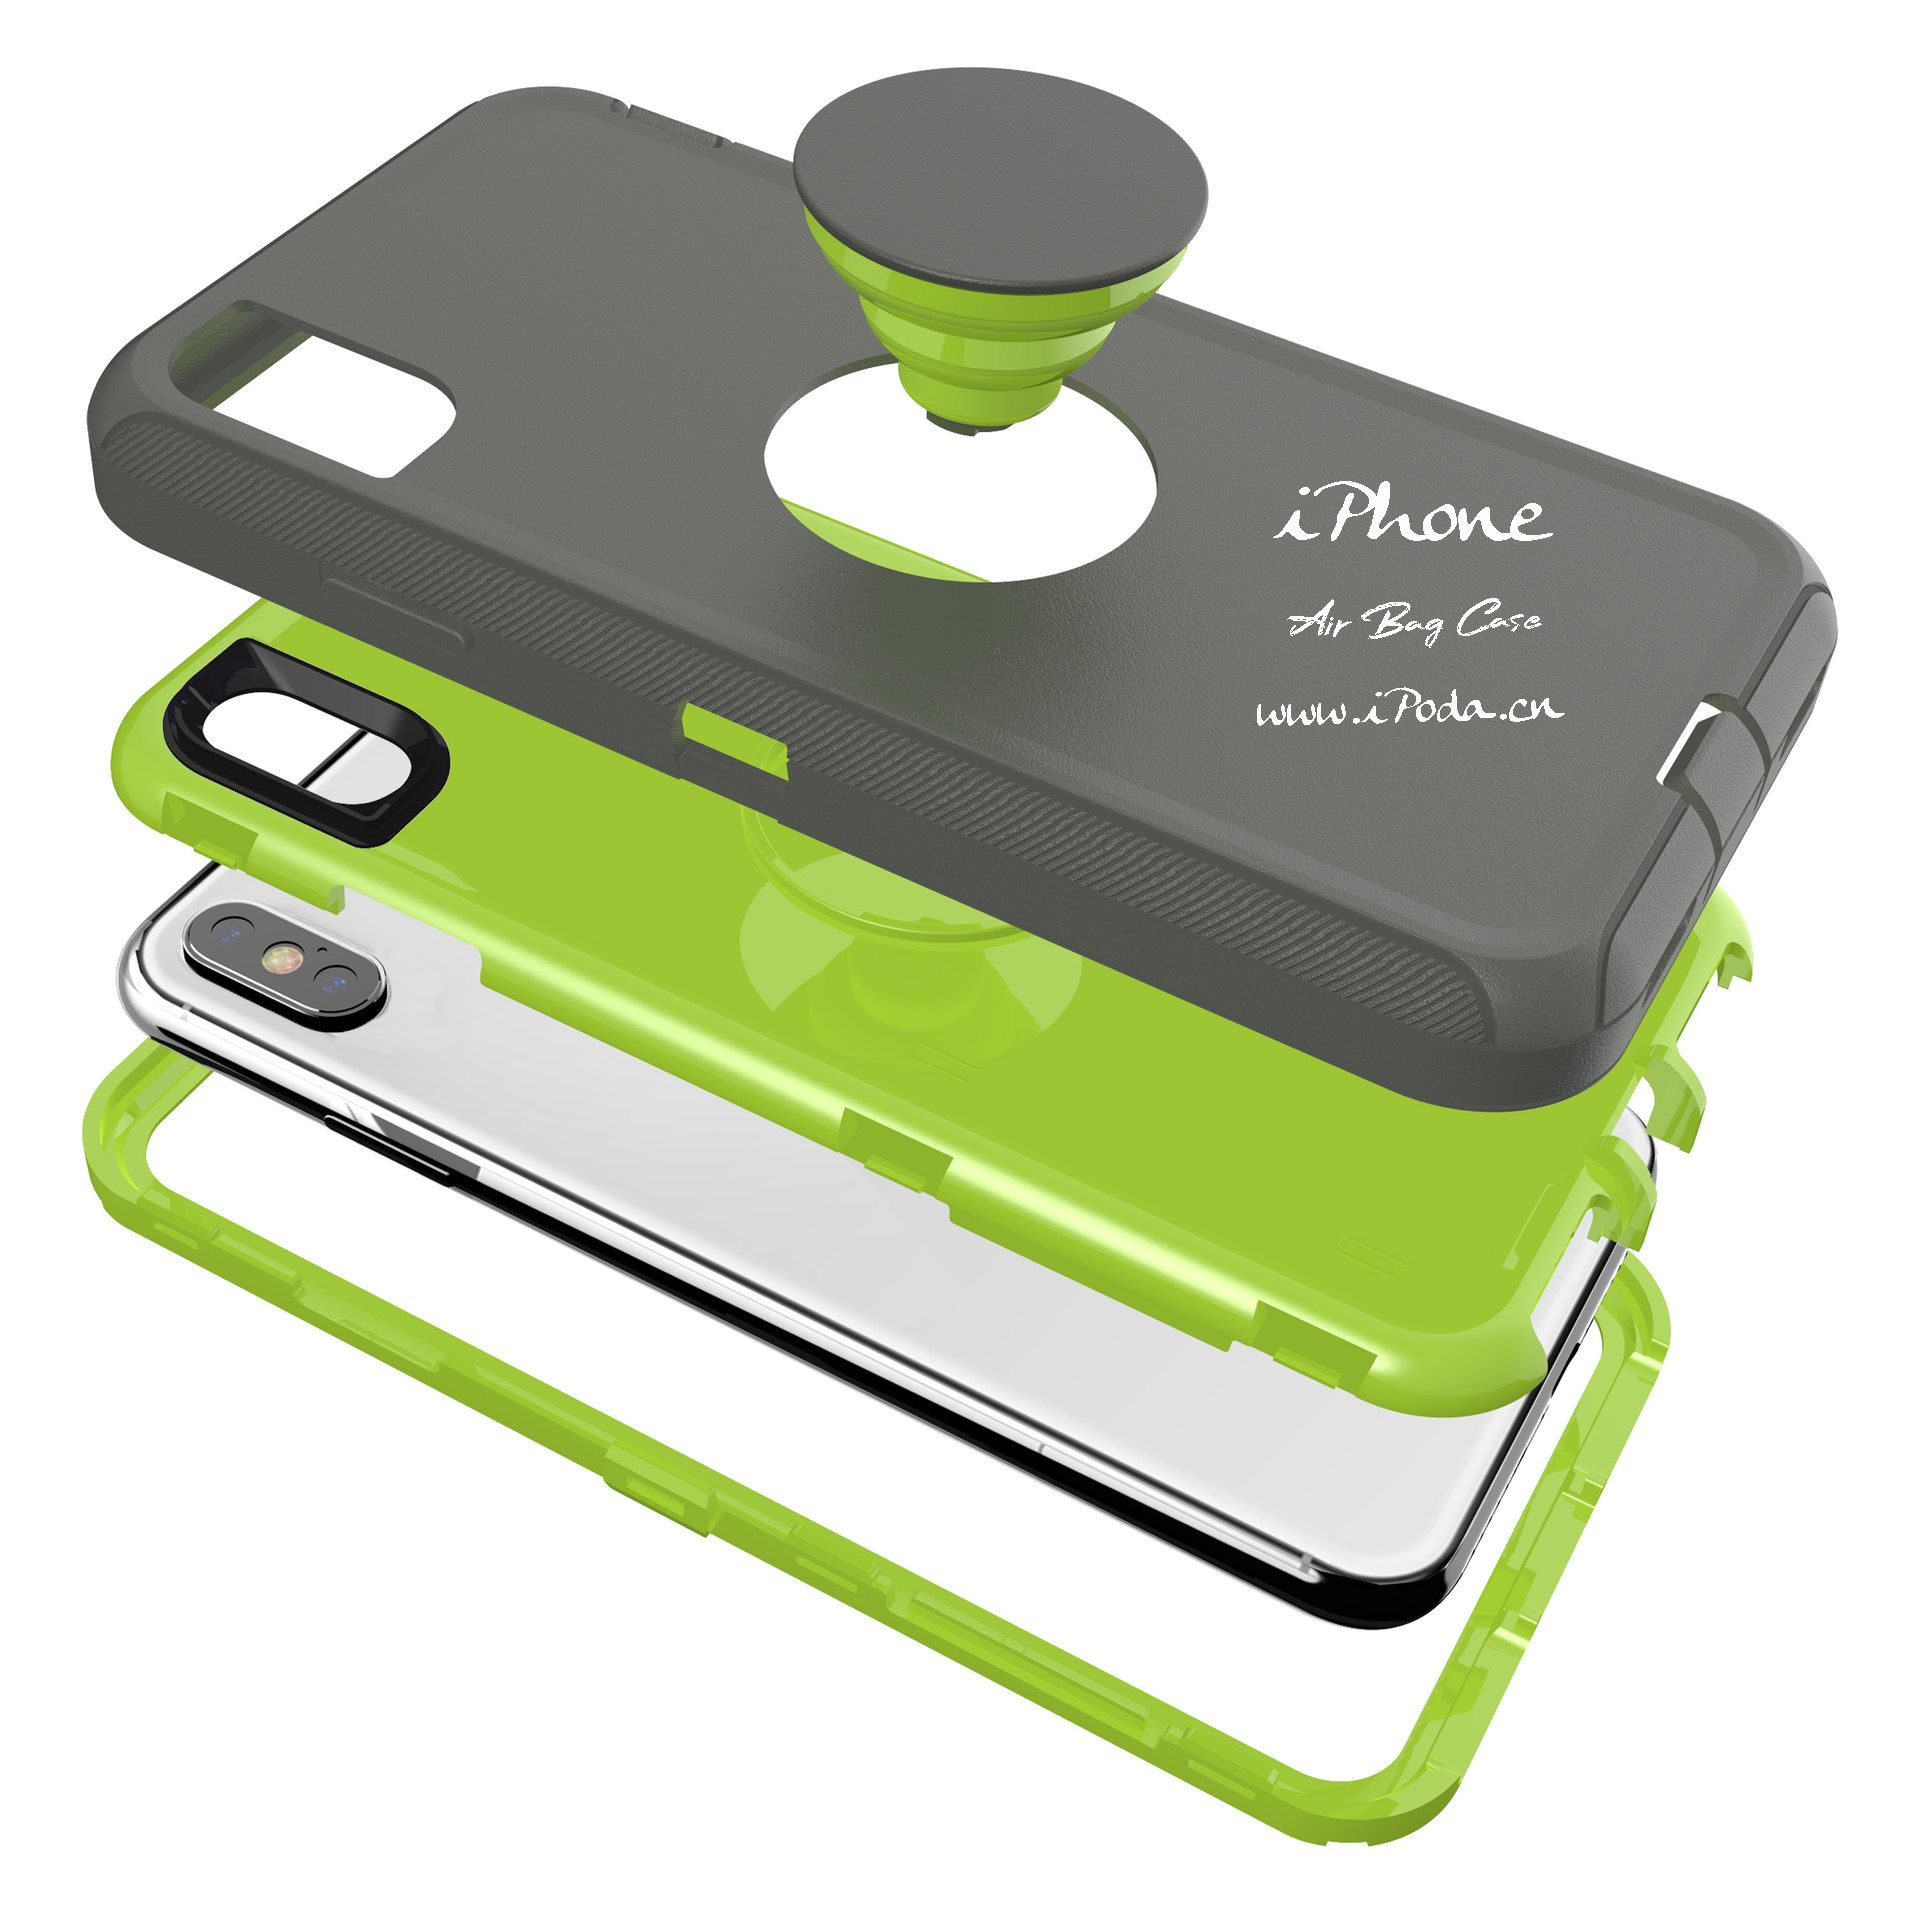 iPhone shock proof case